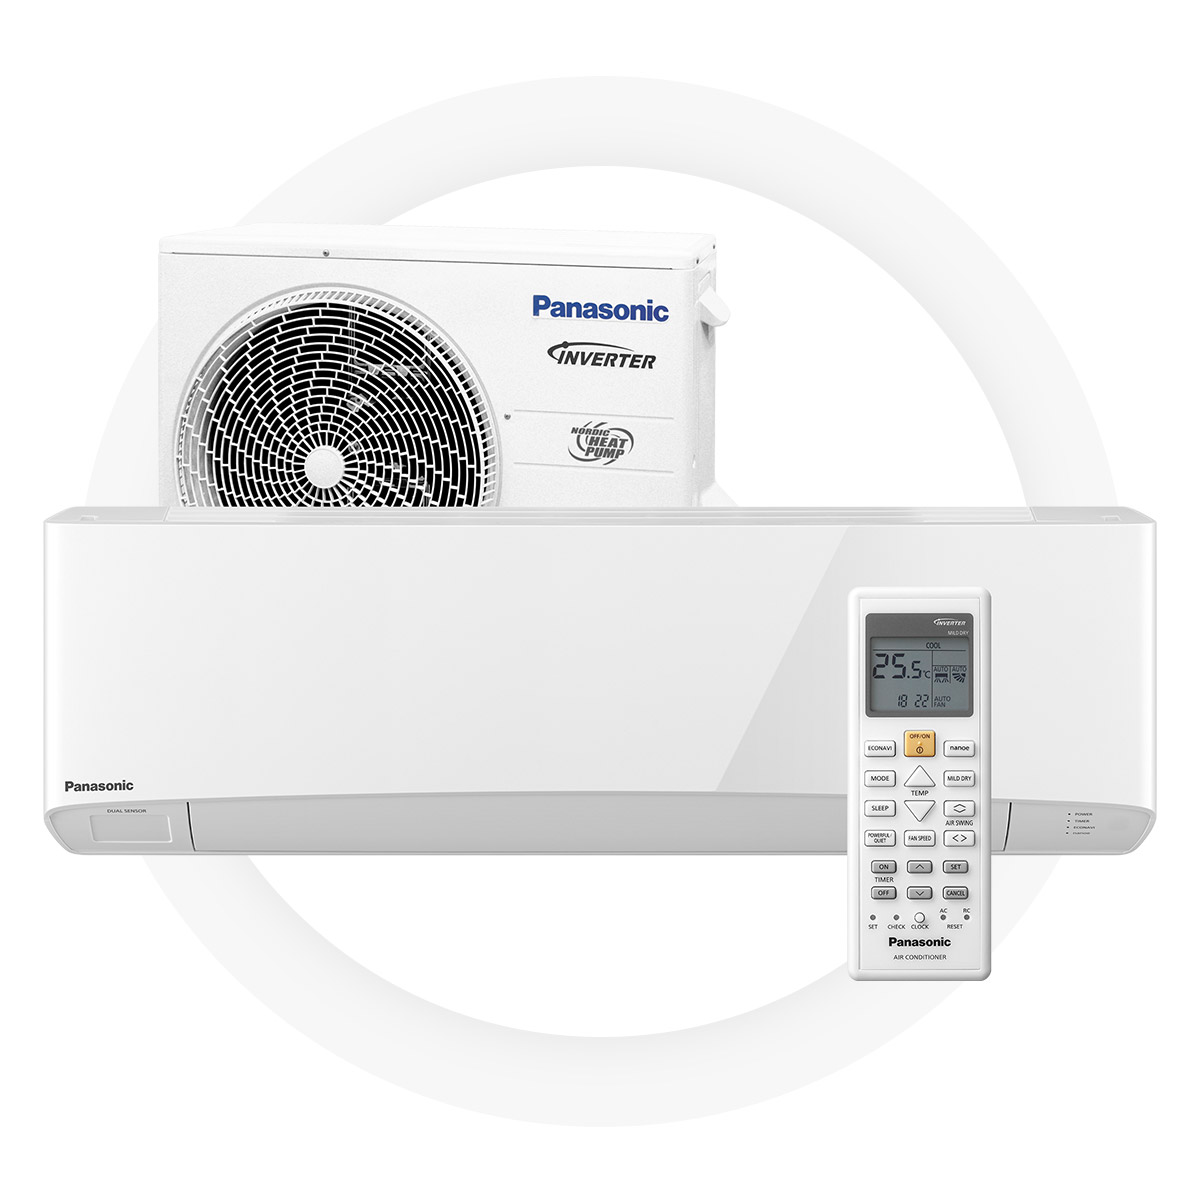 Panasonic nz25-tke - High Seasonal Coefficient of Performance of 4,6 generates remarkable savingsGreat energy efficiency on heating and cooling – A+++8/+15°C temperature maintenance modeVery silent work mode – 19 dBEnvironmentally friendly R32 cold medium5 year full factory warranty by Panasonic